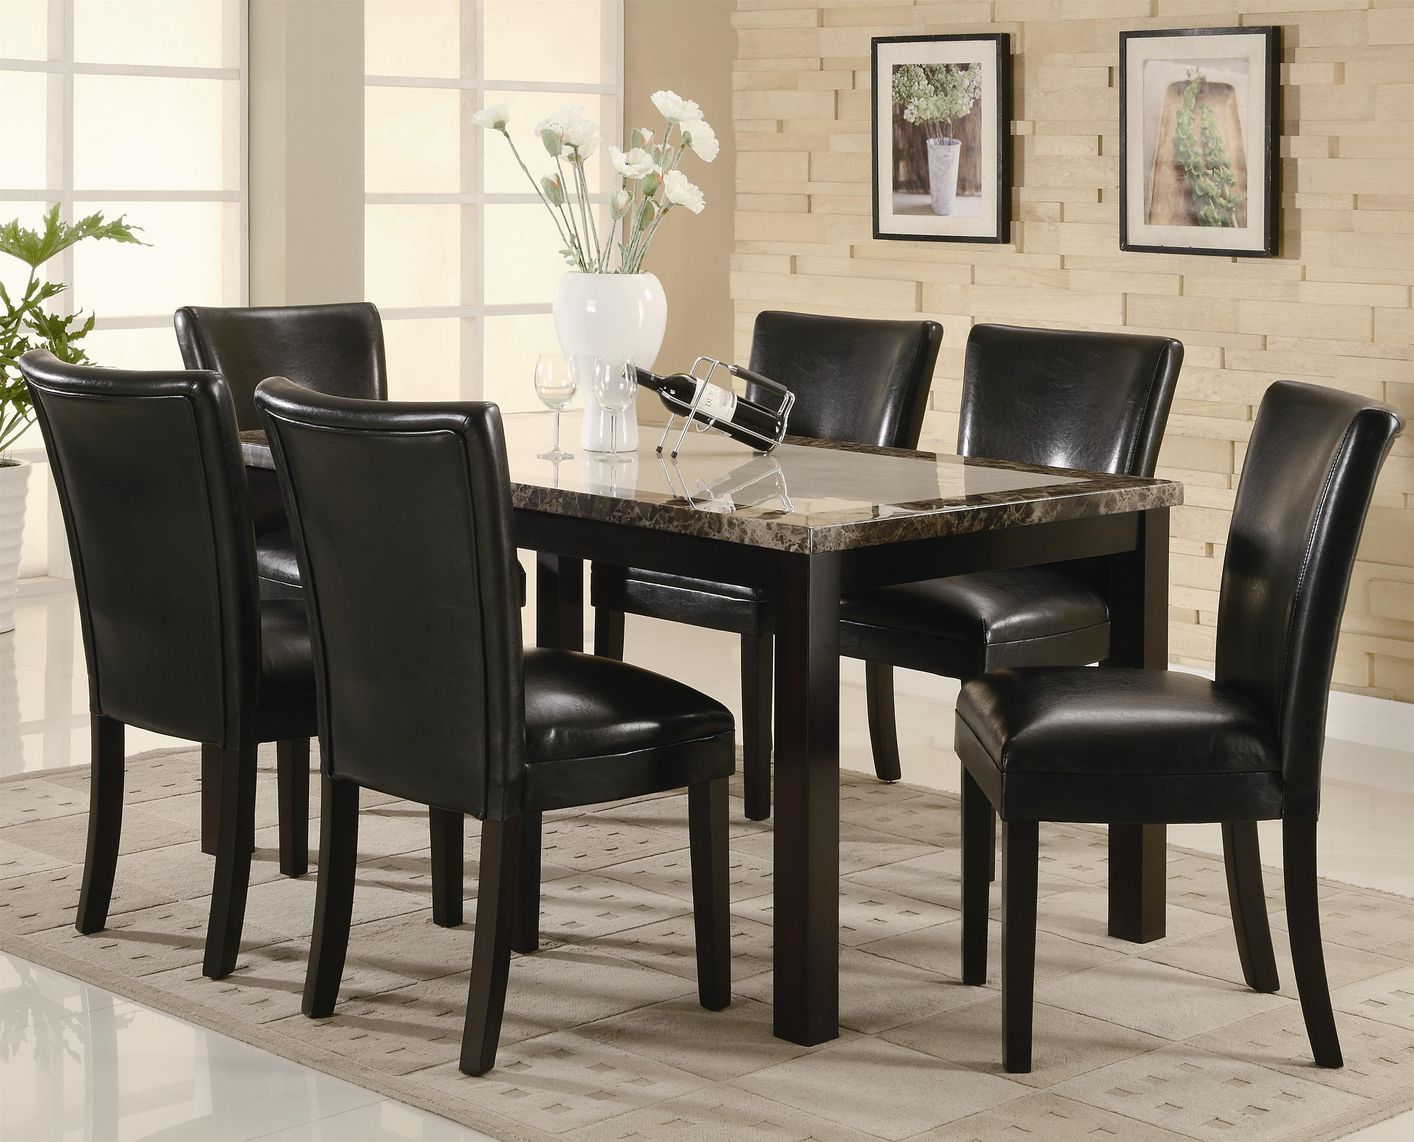 Coaster carter 102260 102262 brown wood and marble dining for Dining room table and chair sets